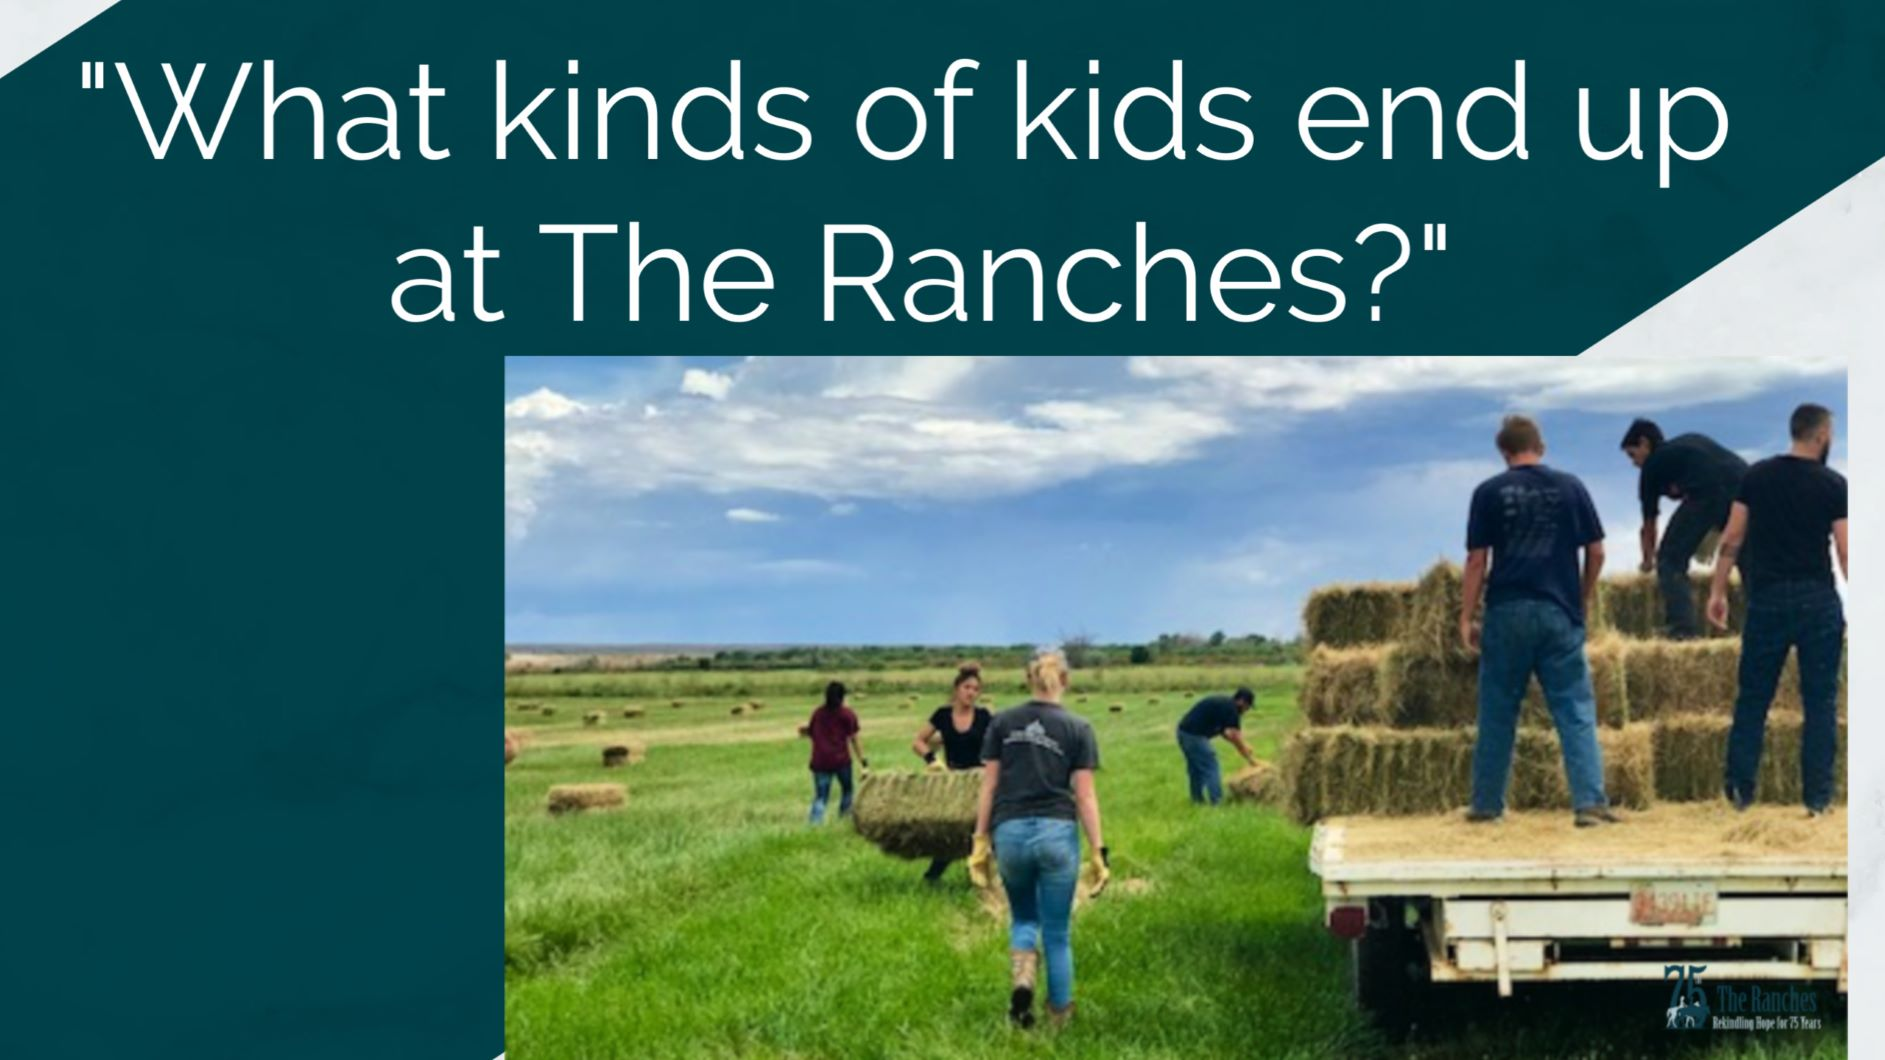 kids at the ranch hauling hay